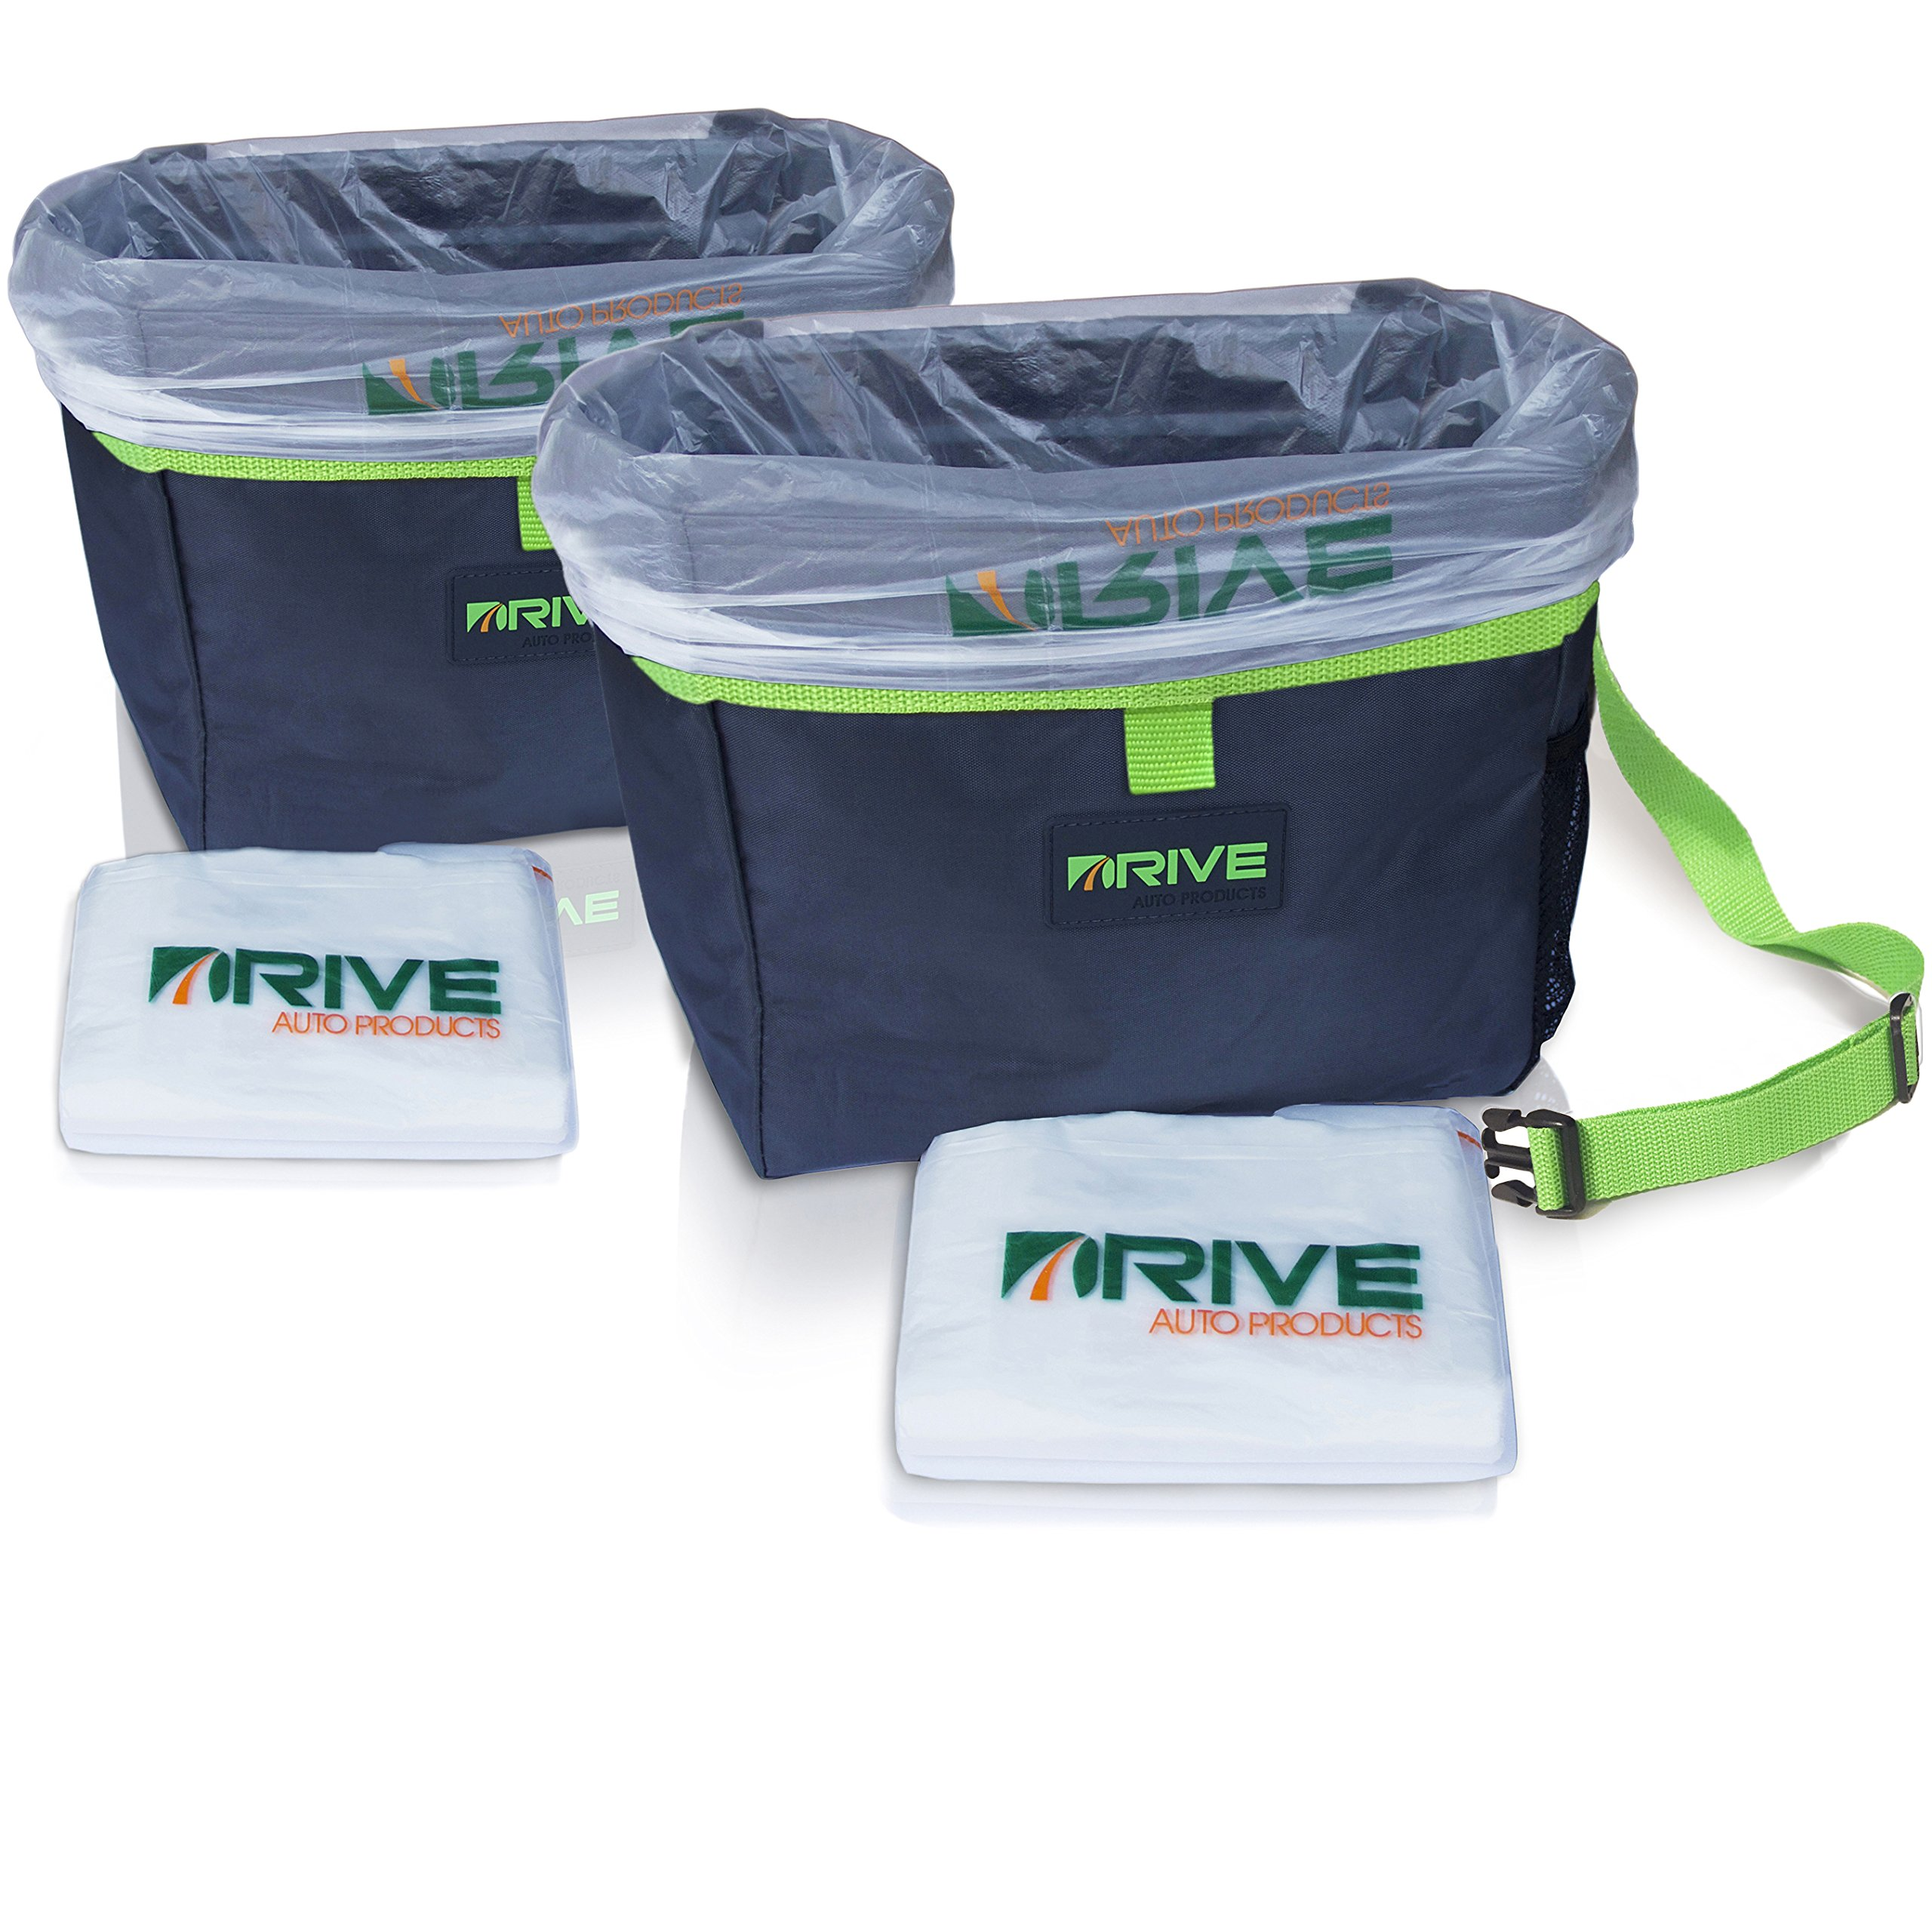 Drive Auto Products Car Trash Can, Green (2-Pack) by Best Garbage Bag for Litter, FREE Waste Basket Liners - Hanging Recycle Kit is Universal & Waterproof, Versatile Drink Cooler or Road Trip Bundle